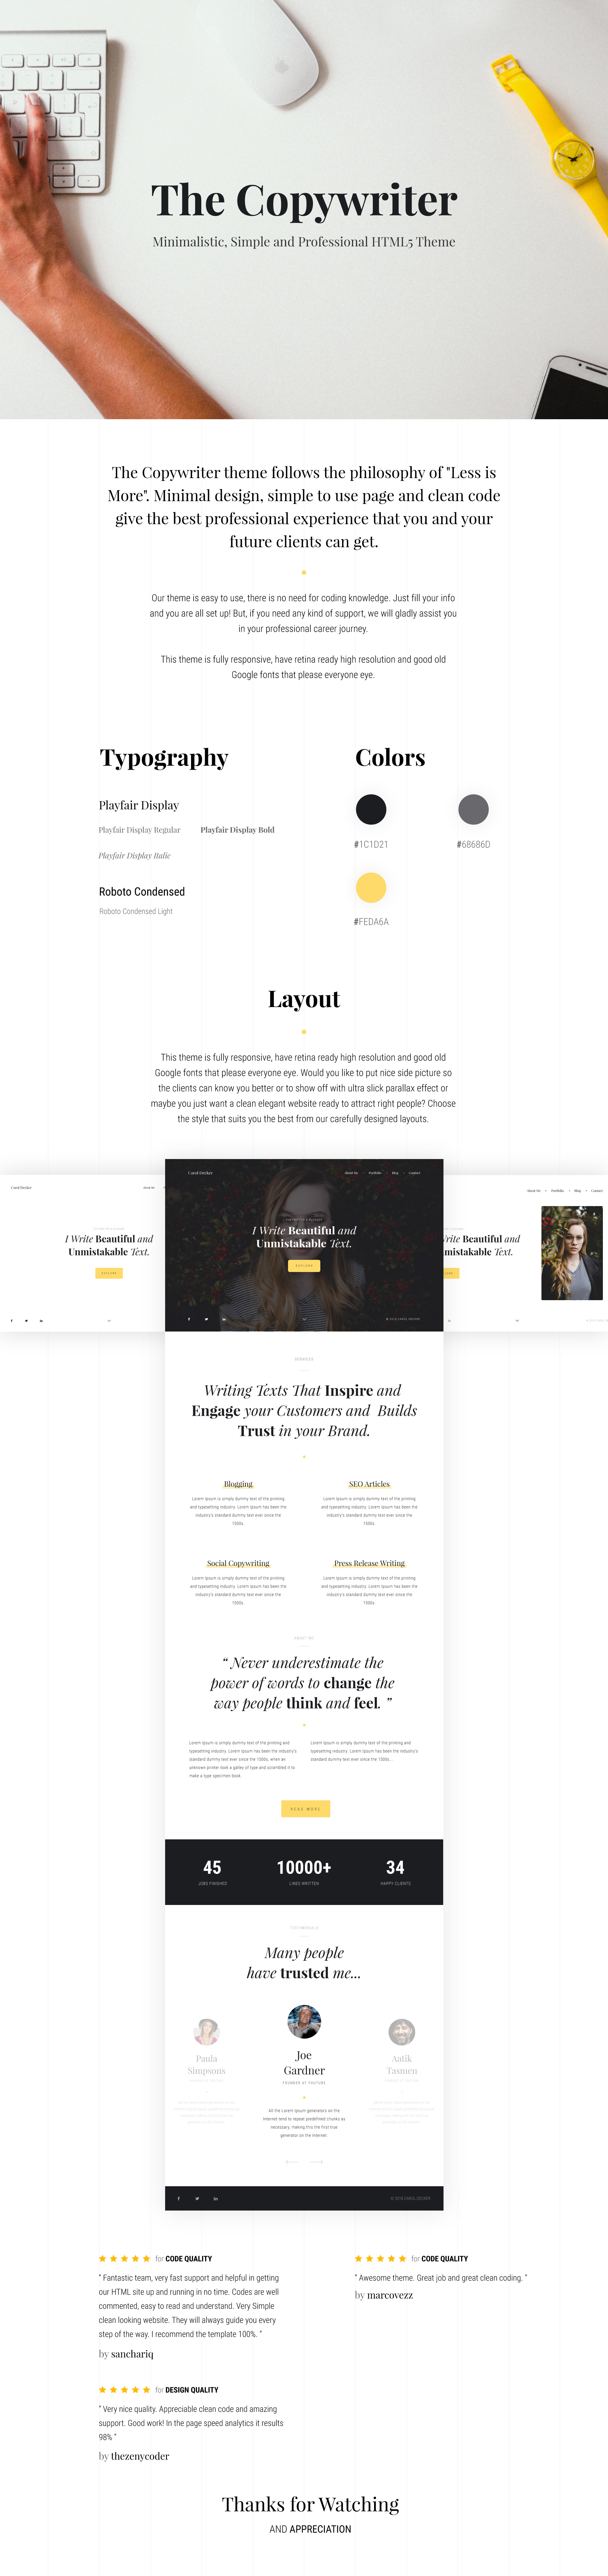 The Copywriter | Simple, Minimalistic, Clean and Professional HTML5 Theme - 1